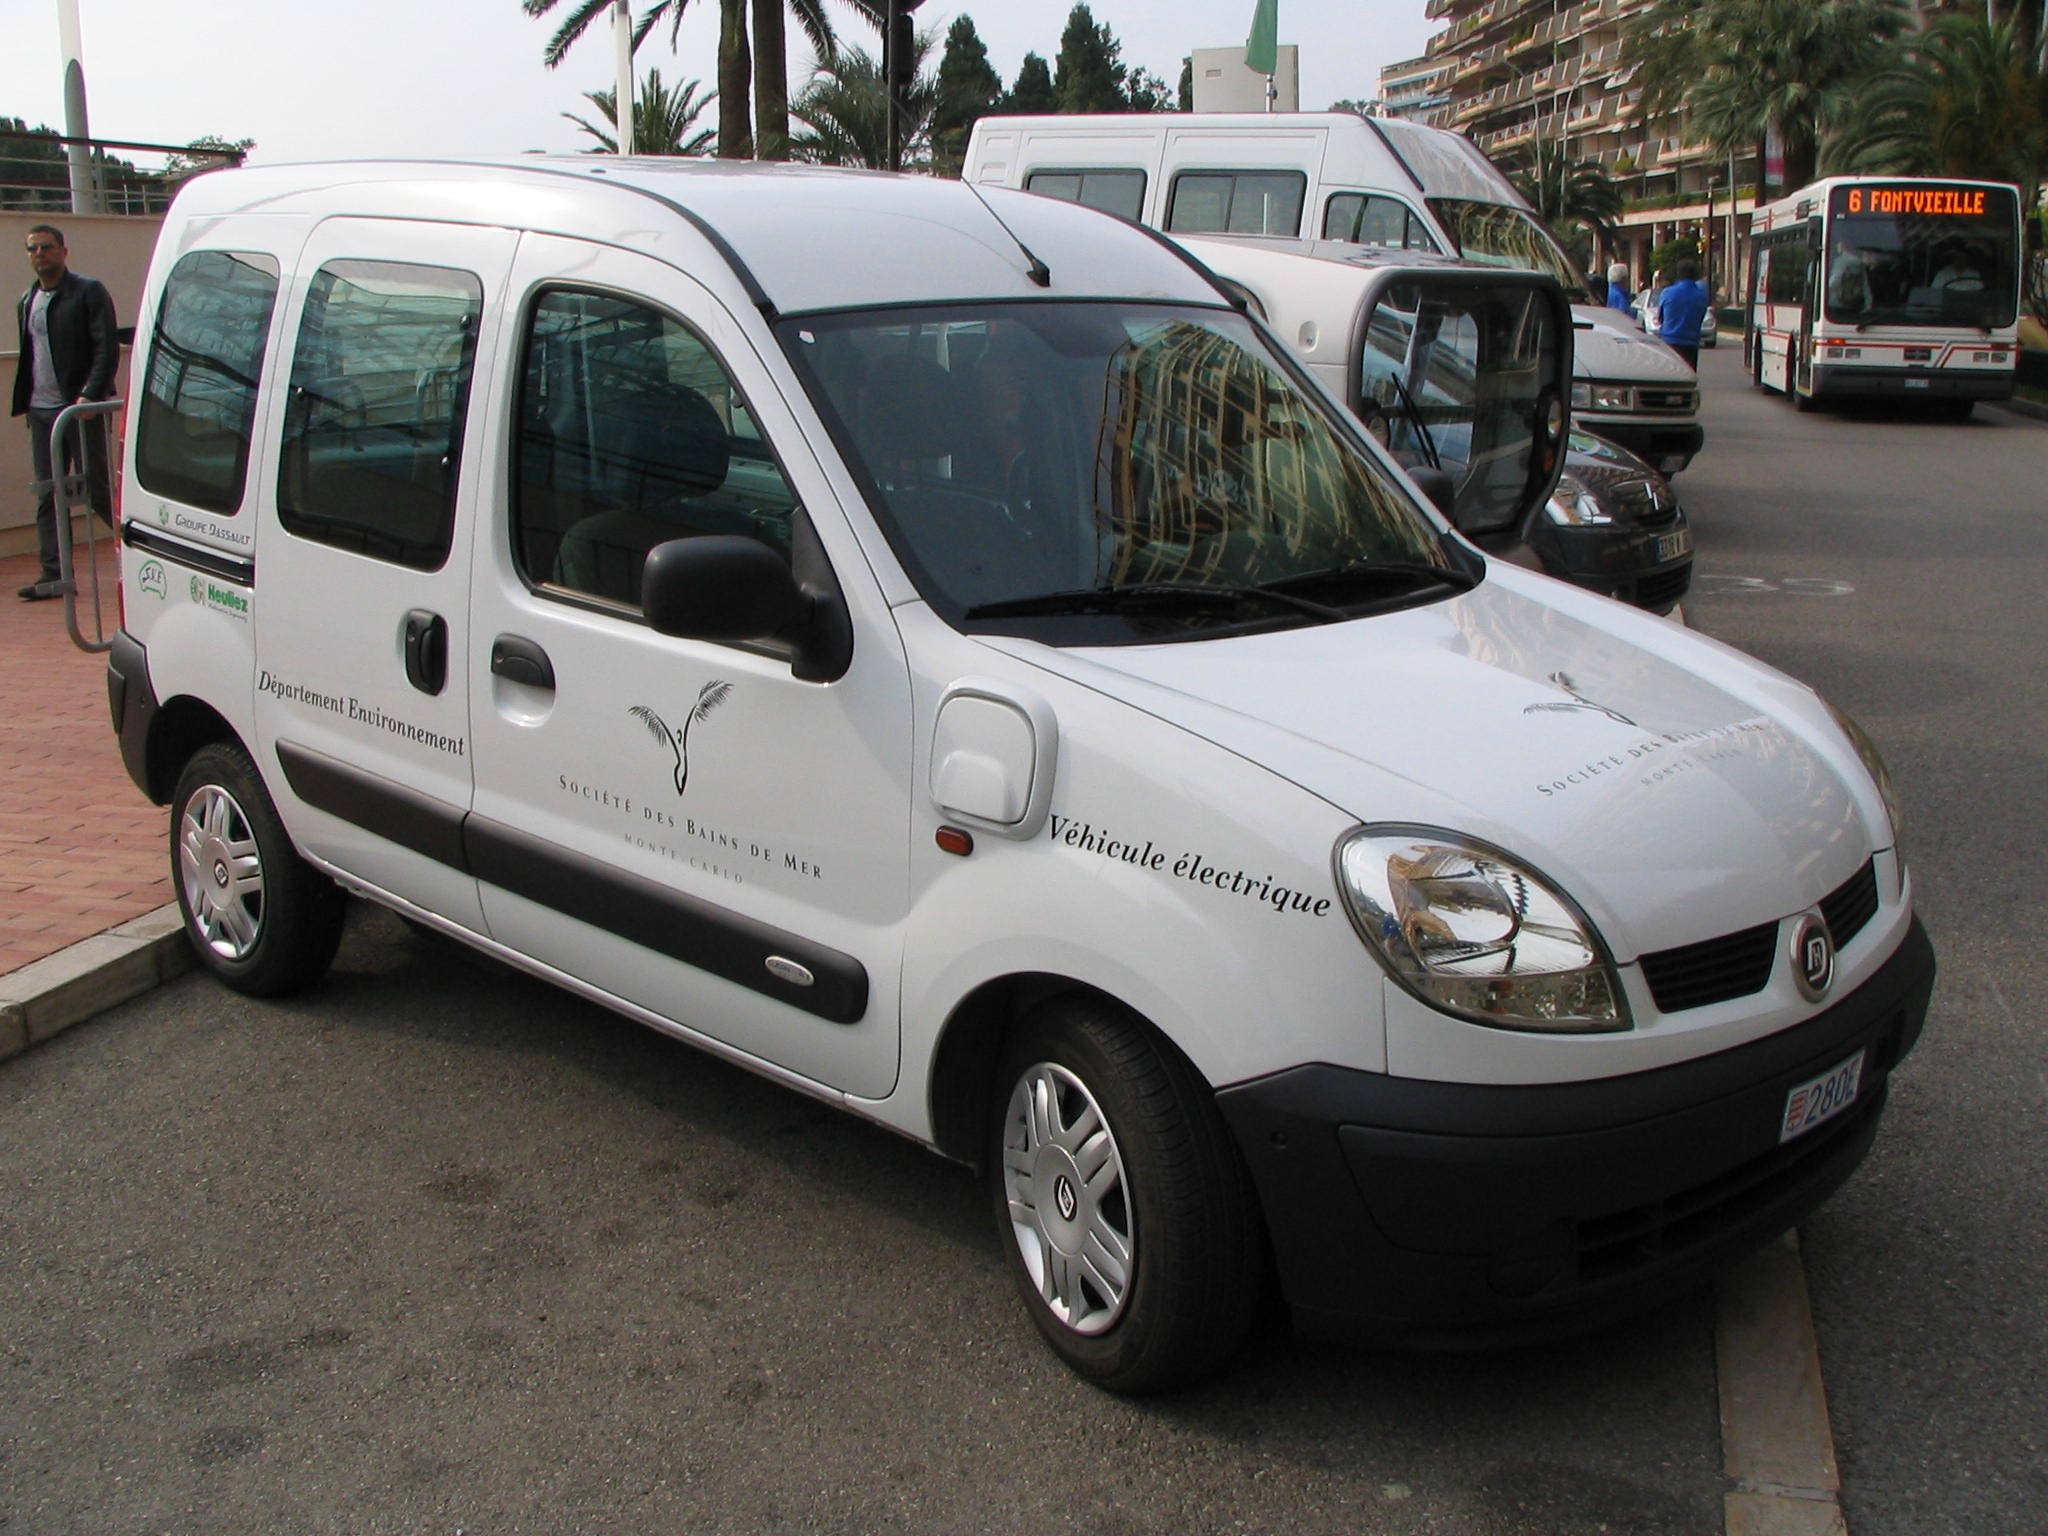 renault kangoo electric car. Black Bedroom Furniture Sets. Home Design Ideas